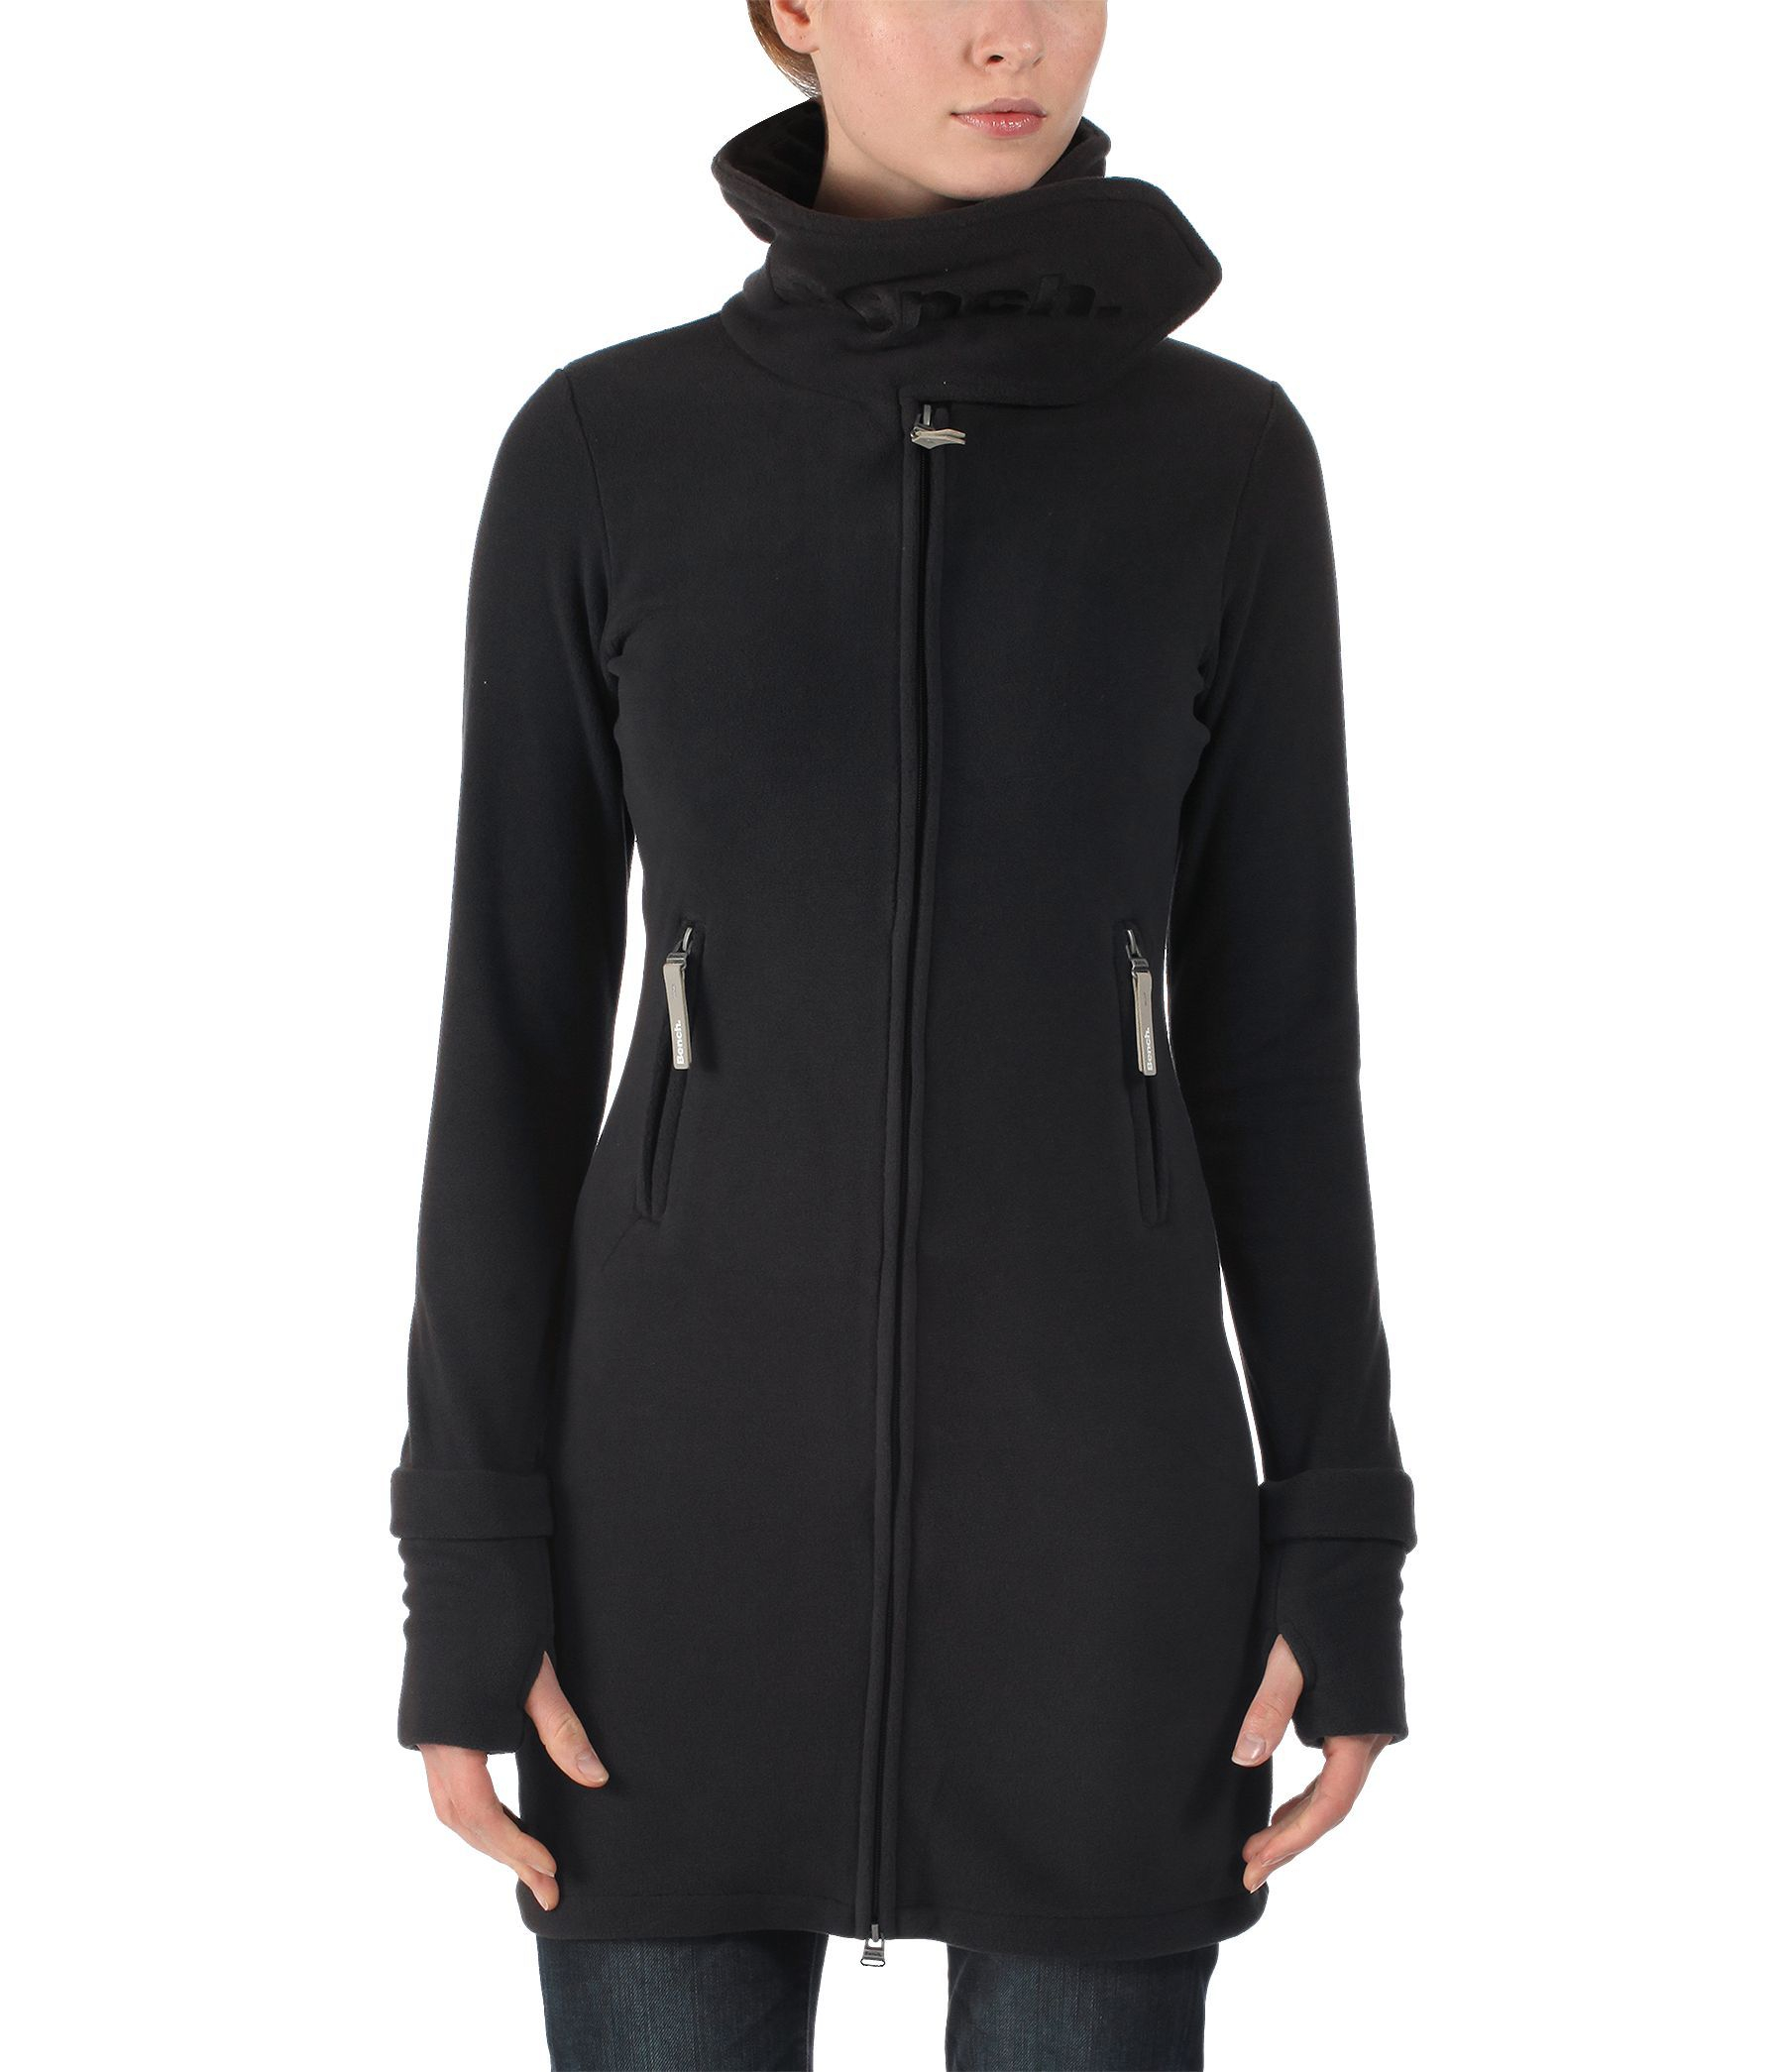 Bench Long Neck Zip Up Fleece Jacket in Black | Lyst